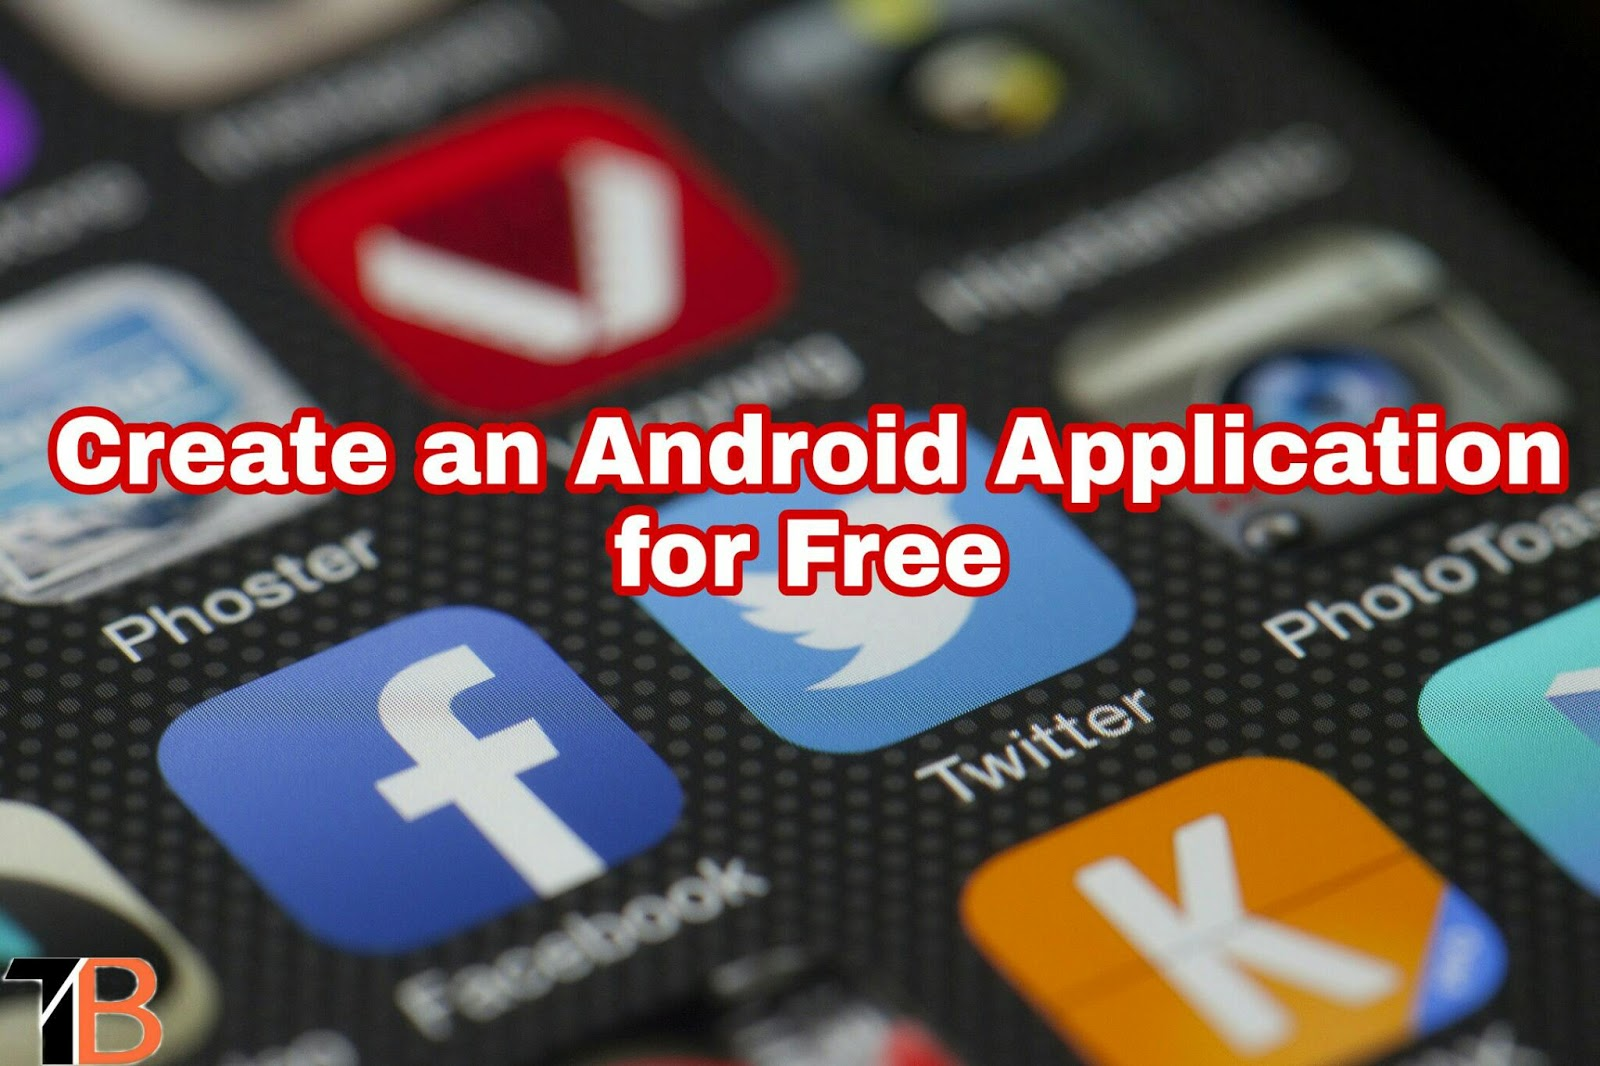 Create an Android Application for Free and Earn Money